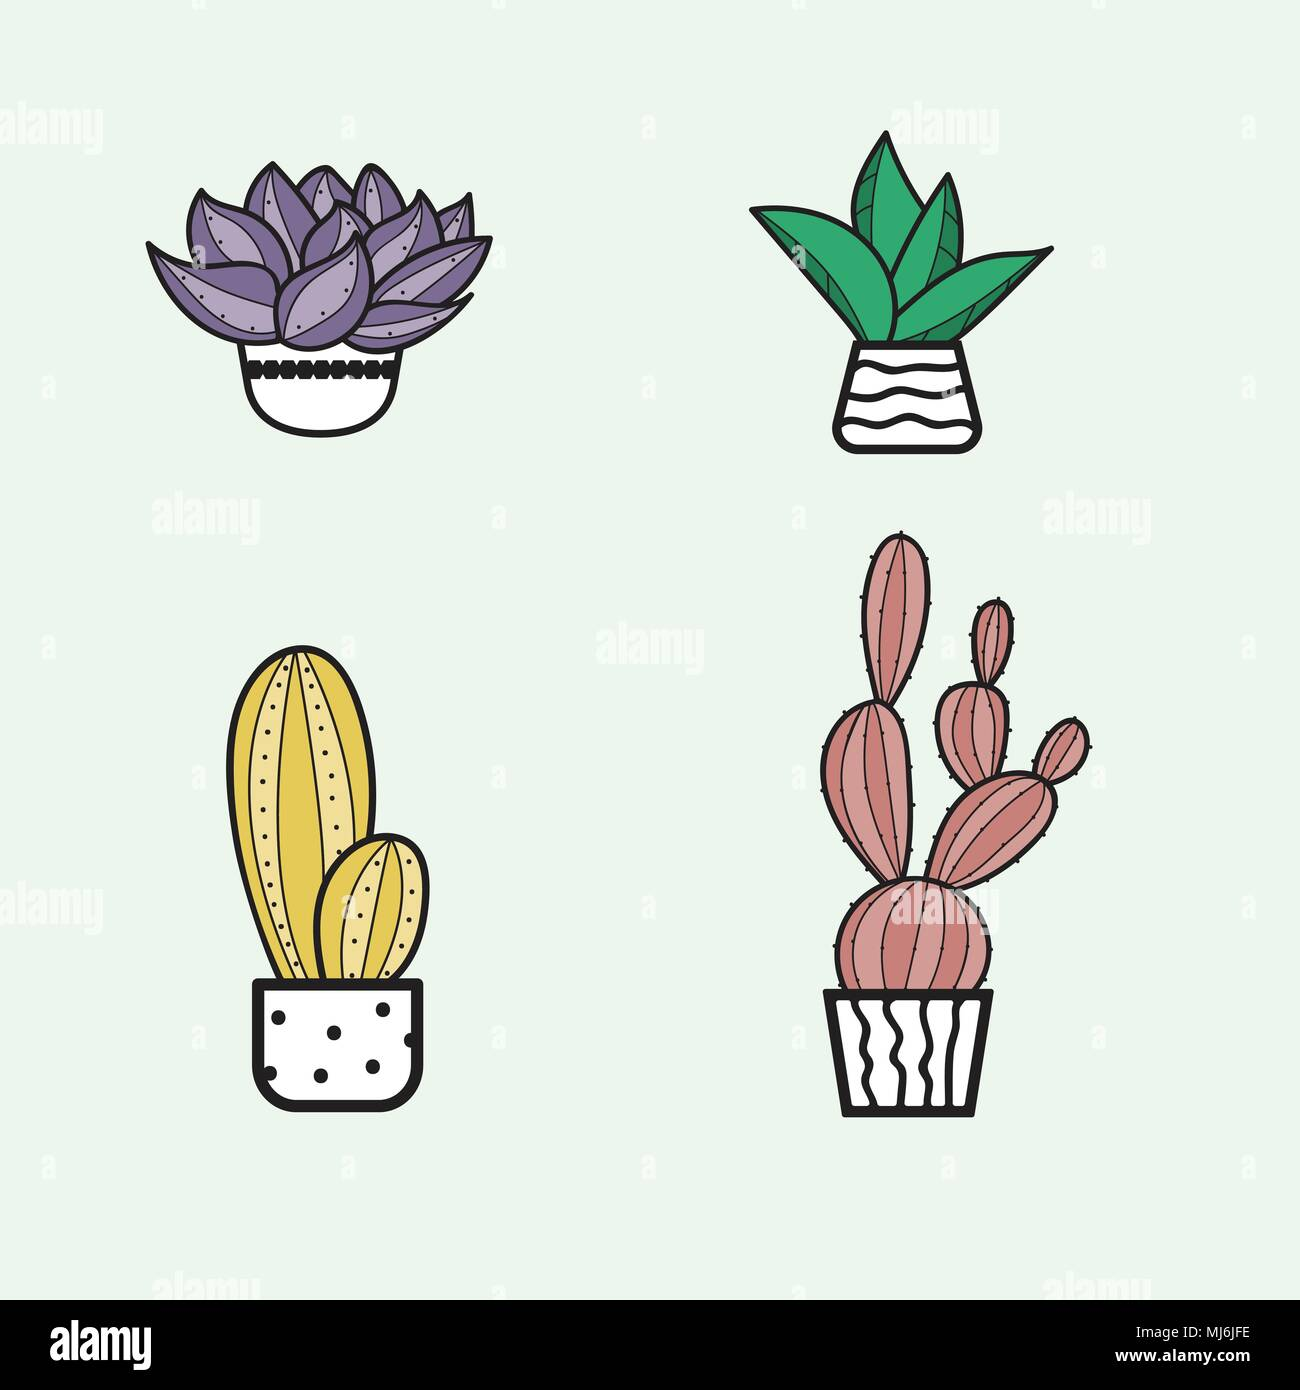 Cute Hand Hand Draw Cactus And Succulent Doodle Set Stock Vector Image Art Alamy